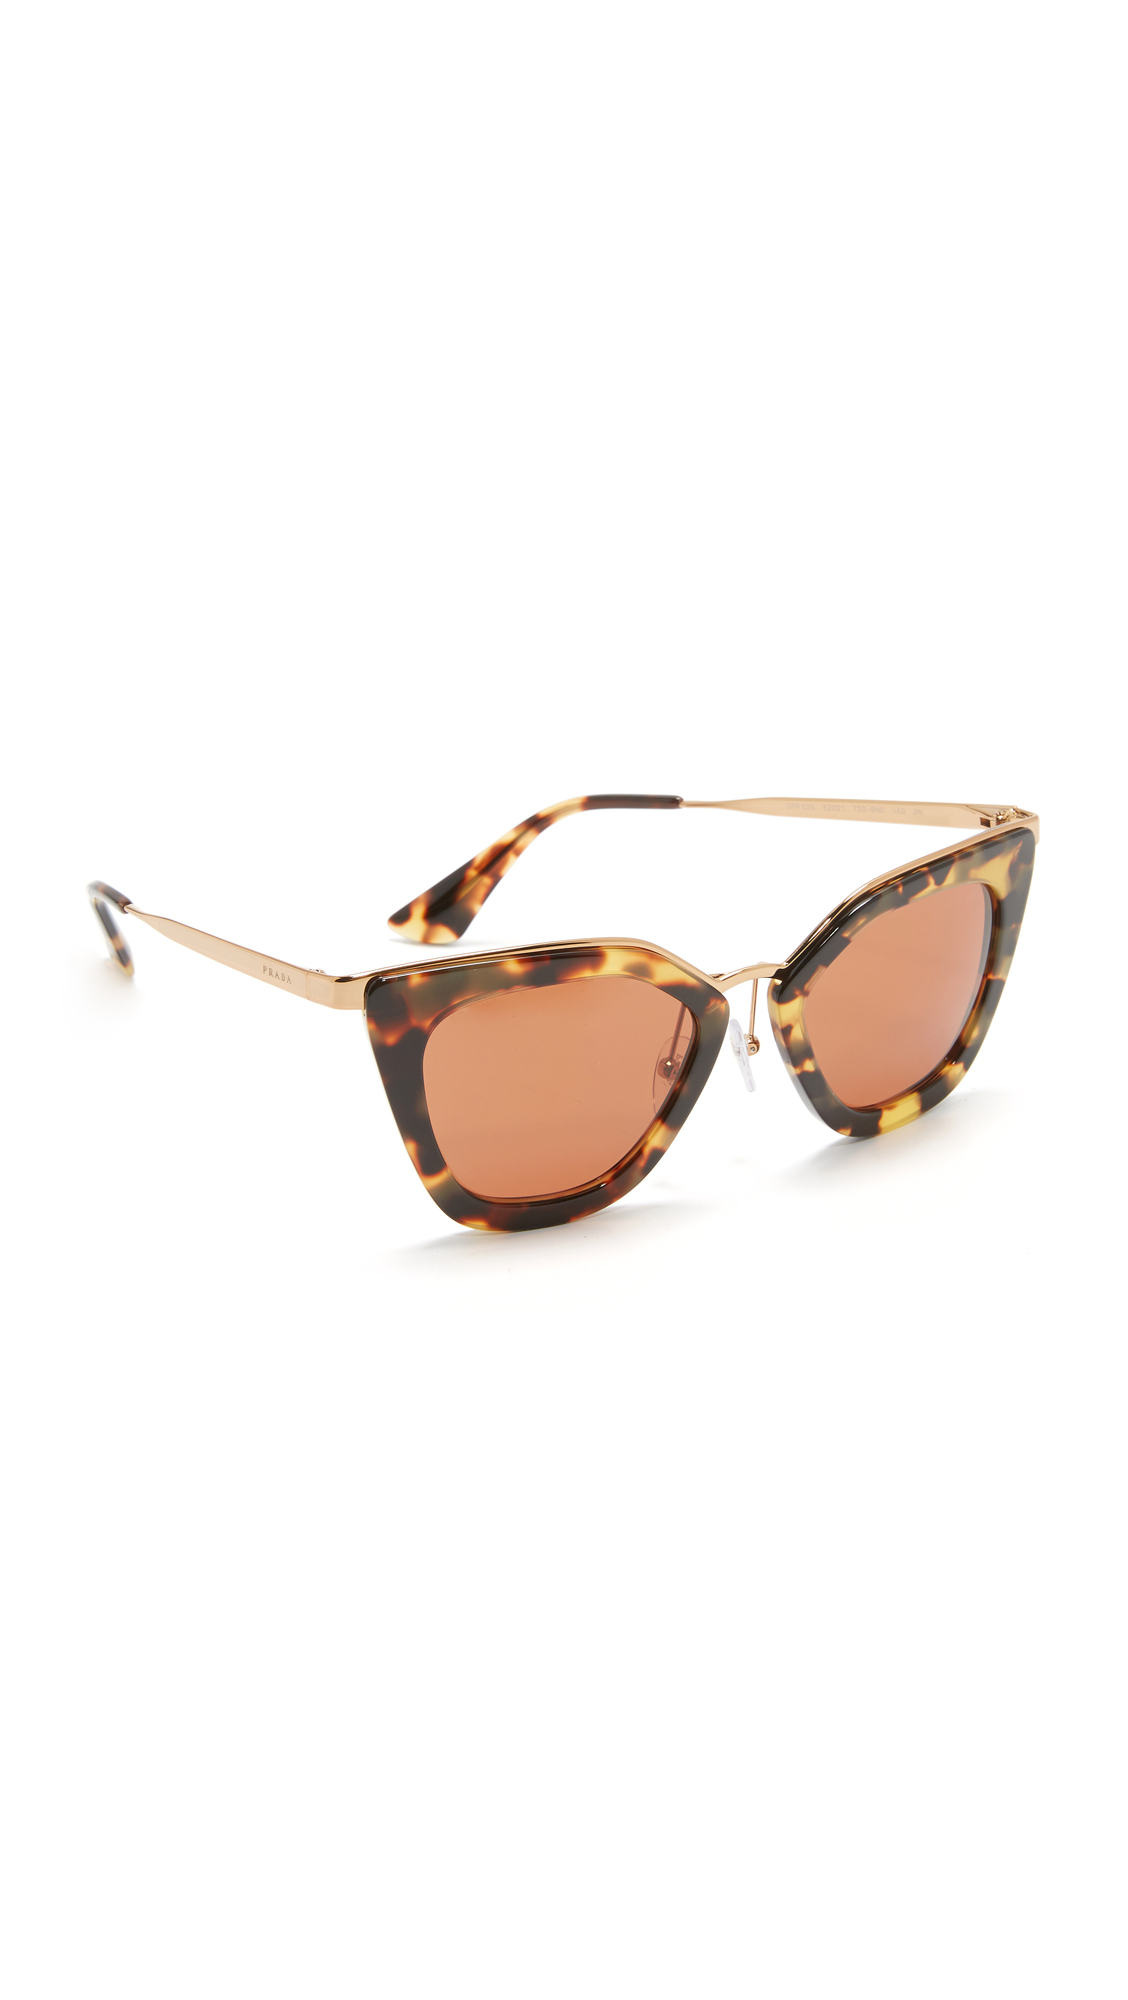 Prada Metal Bridge Sunglasses - Medium Havana/Brown at Shopbop